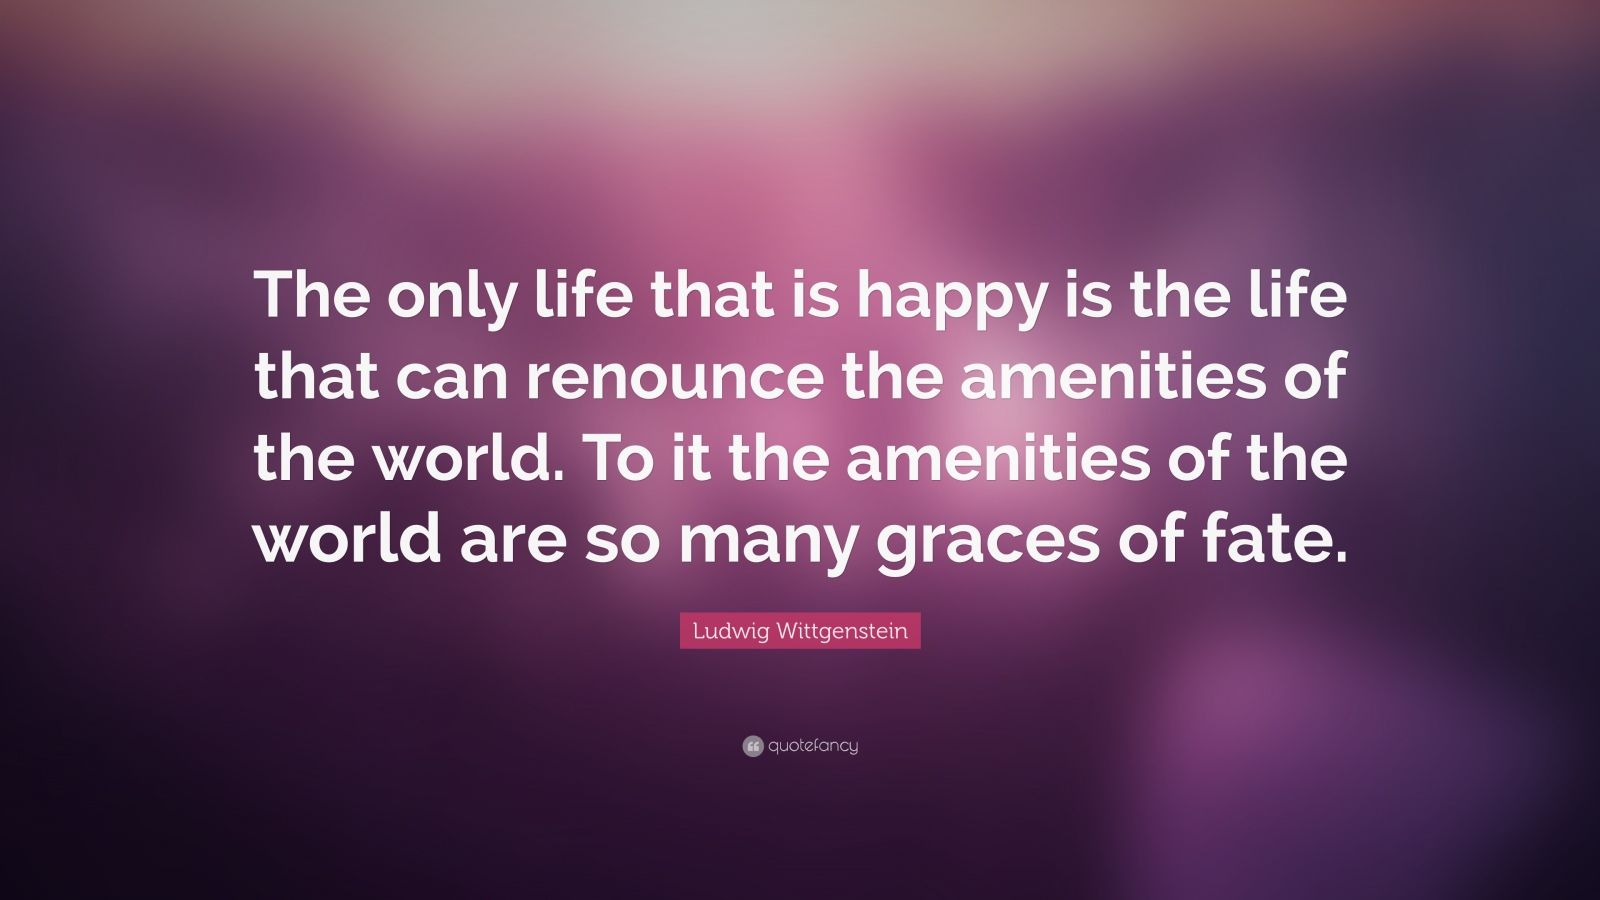 """Ludwig Wittgenstein Quote: """"The only life that is happy is the life that can renounce the amenities of the world. To it the amenities of the world are so many graces of fate."""""""